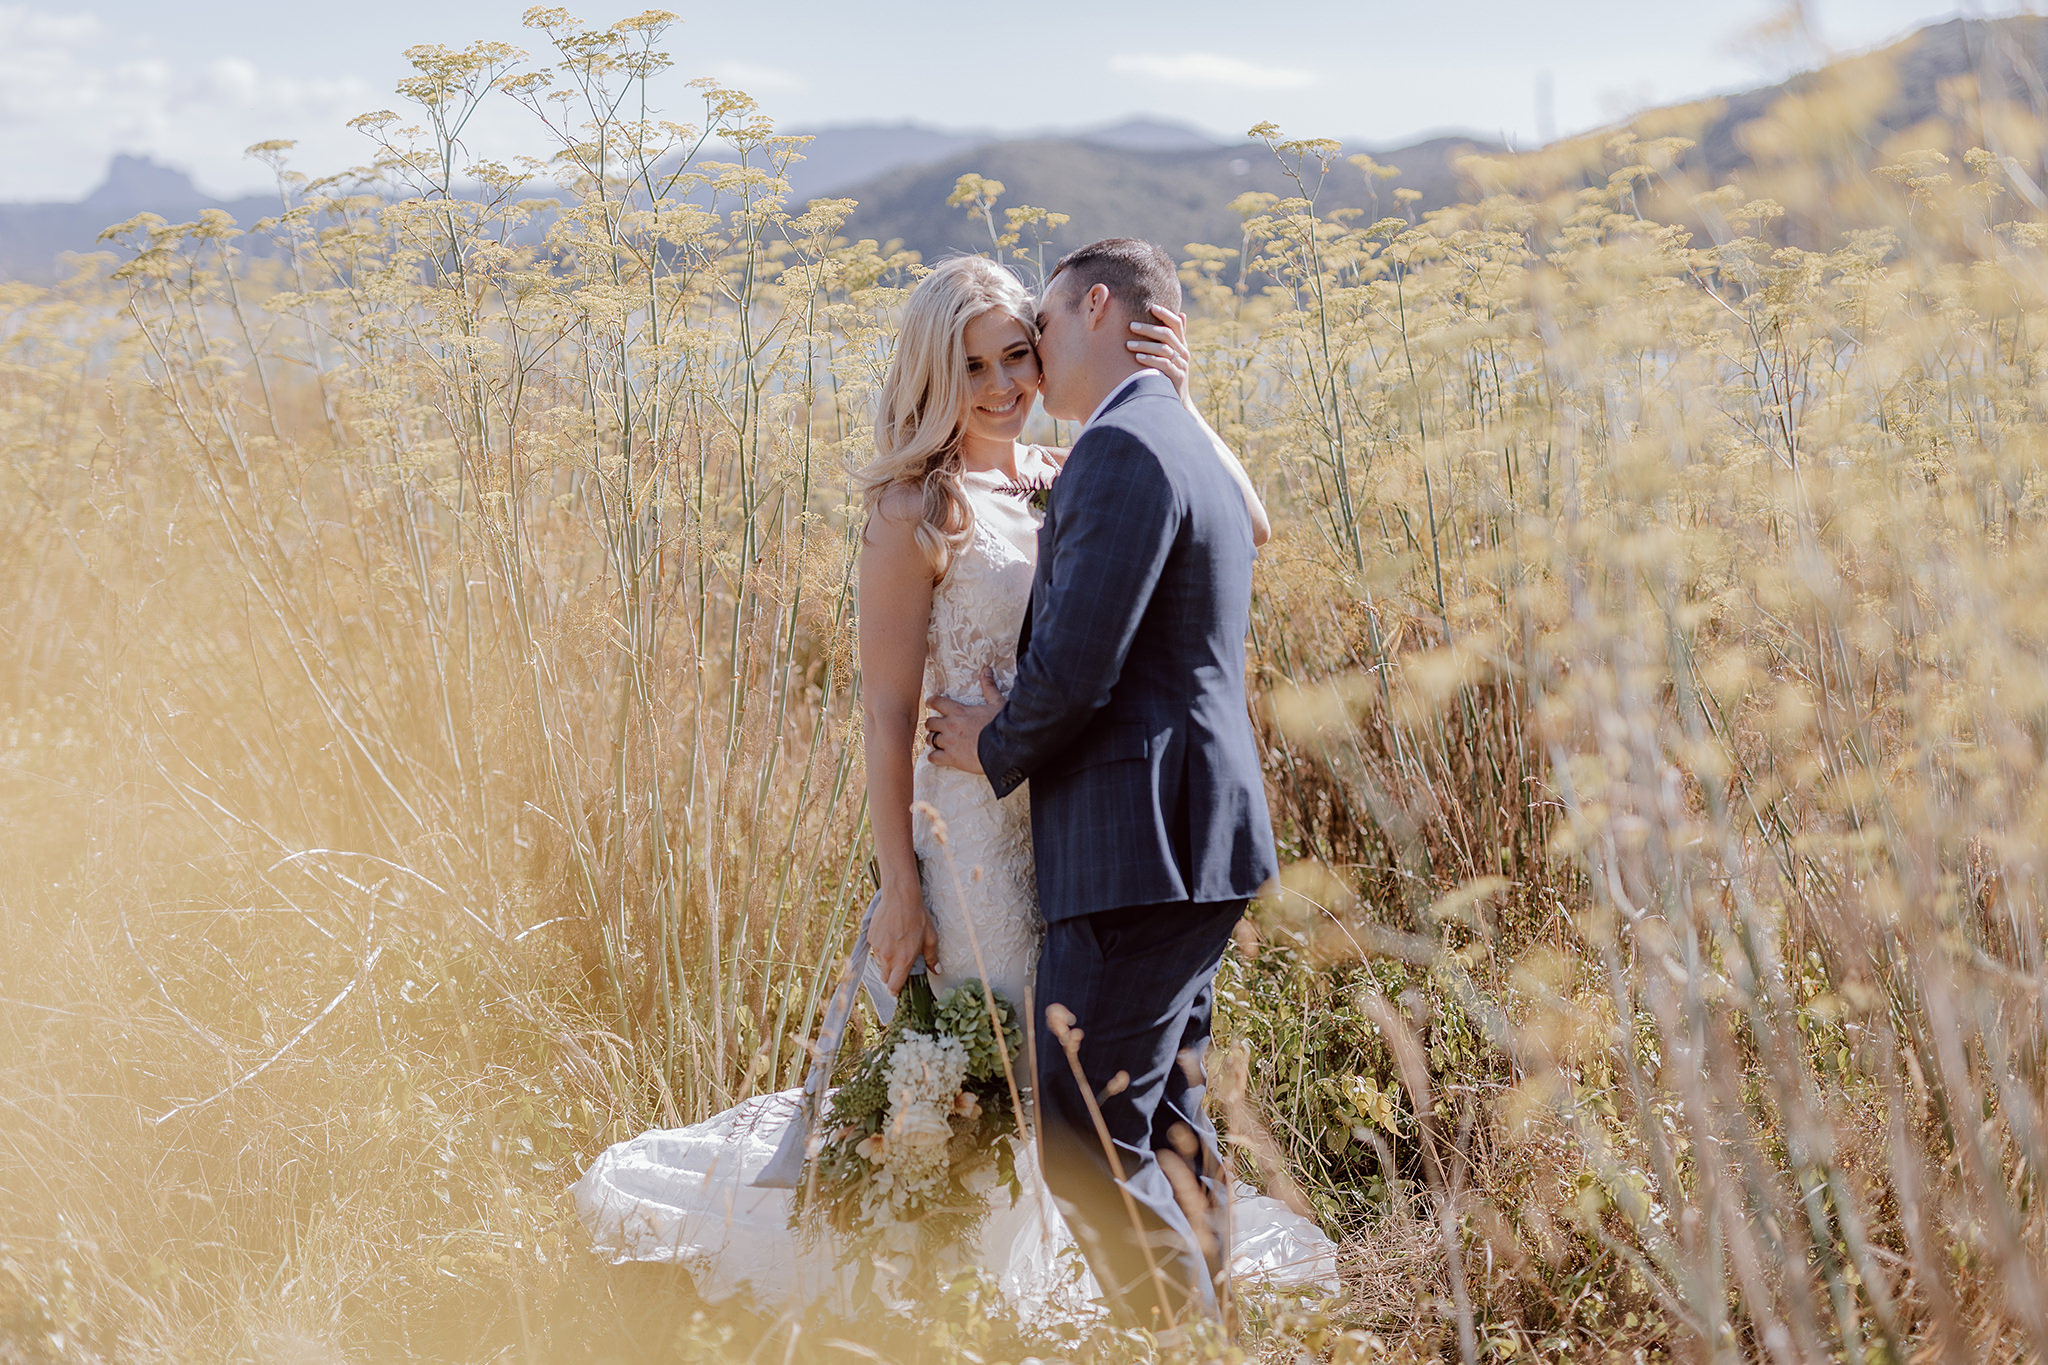 kelly-logan-whangapoua-wedding-jackson-bright20190212_0488.jpg